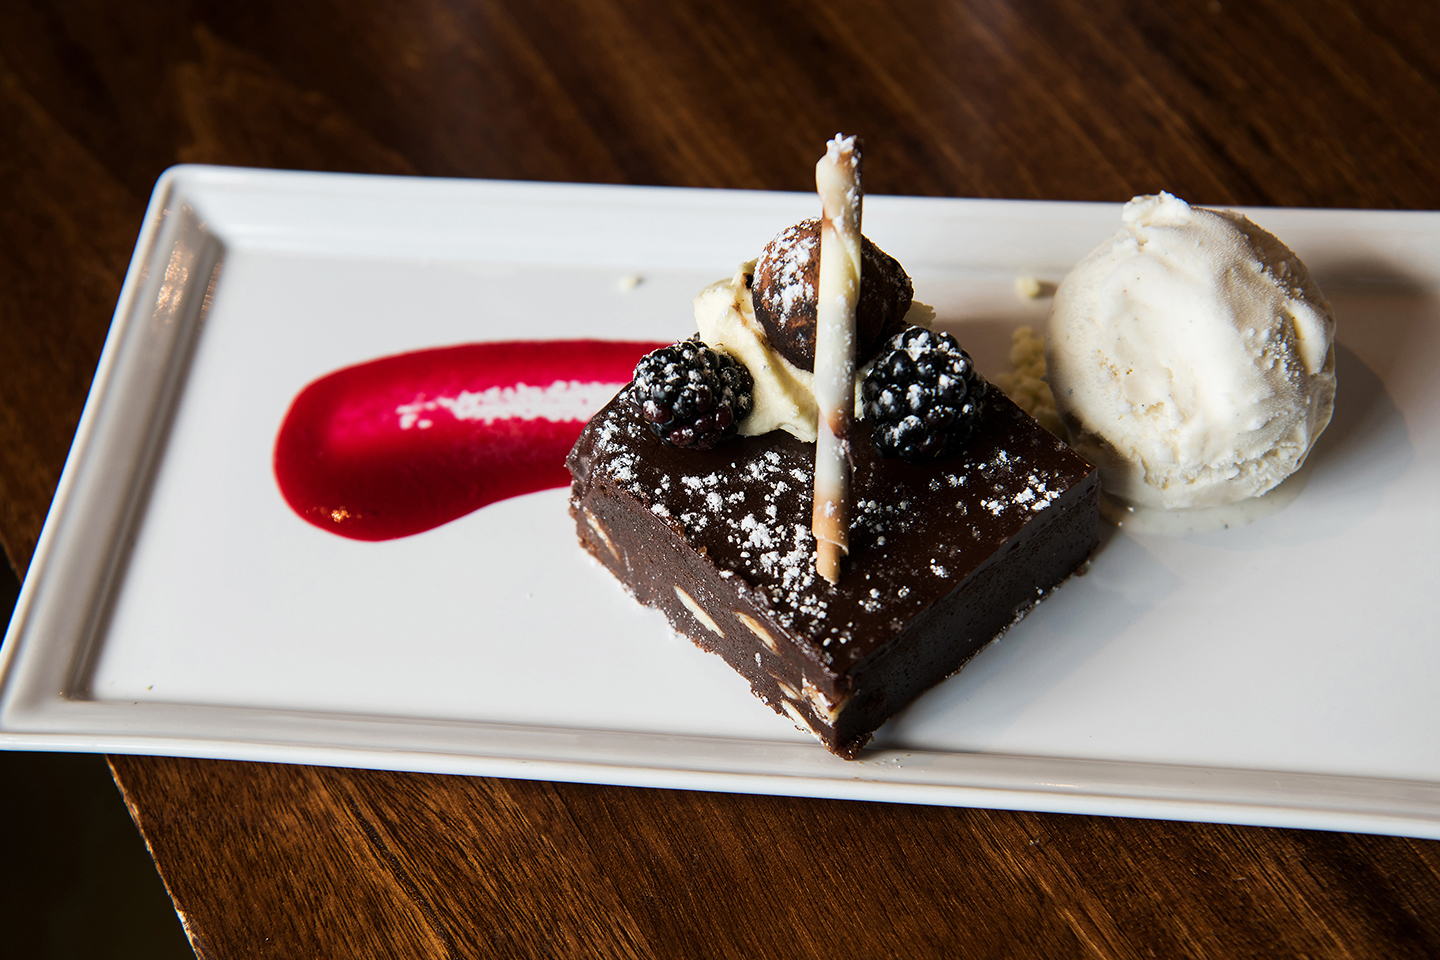 Treat guests to a delicious chocoloate brownie as part of your spring wedding menu at Bassmead Manor Barns